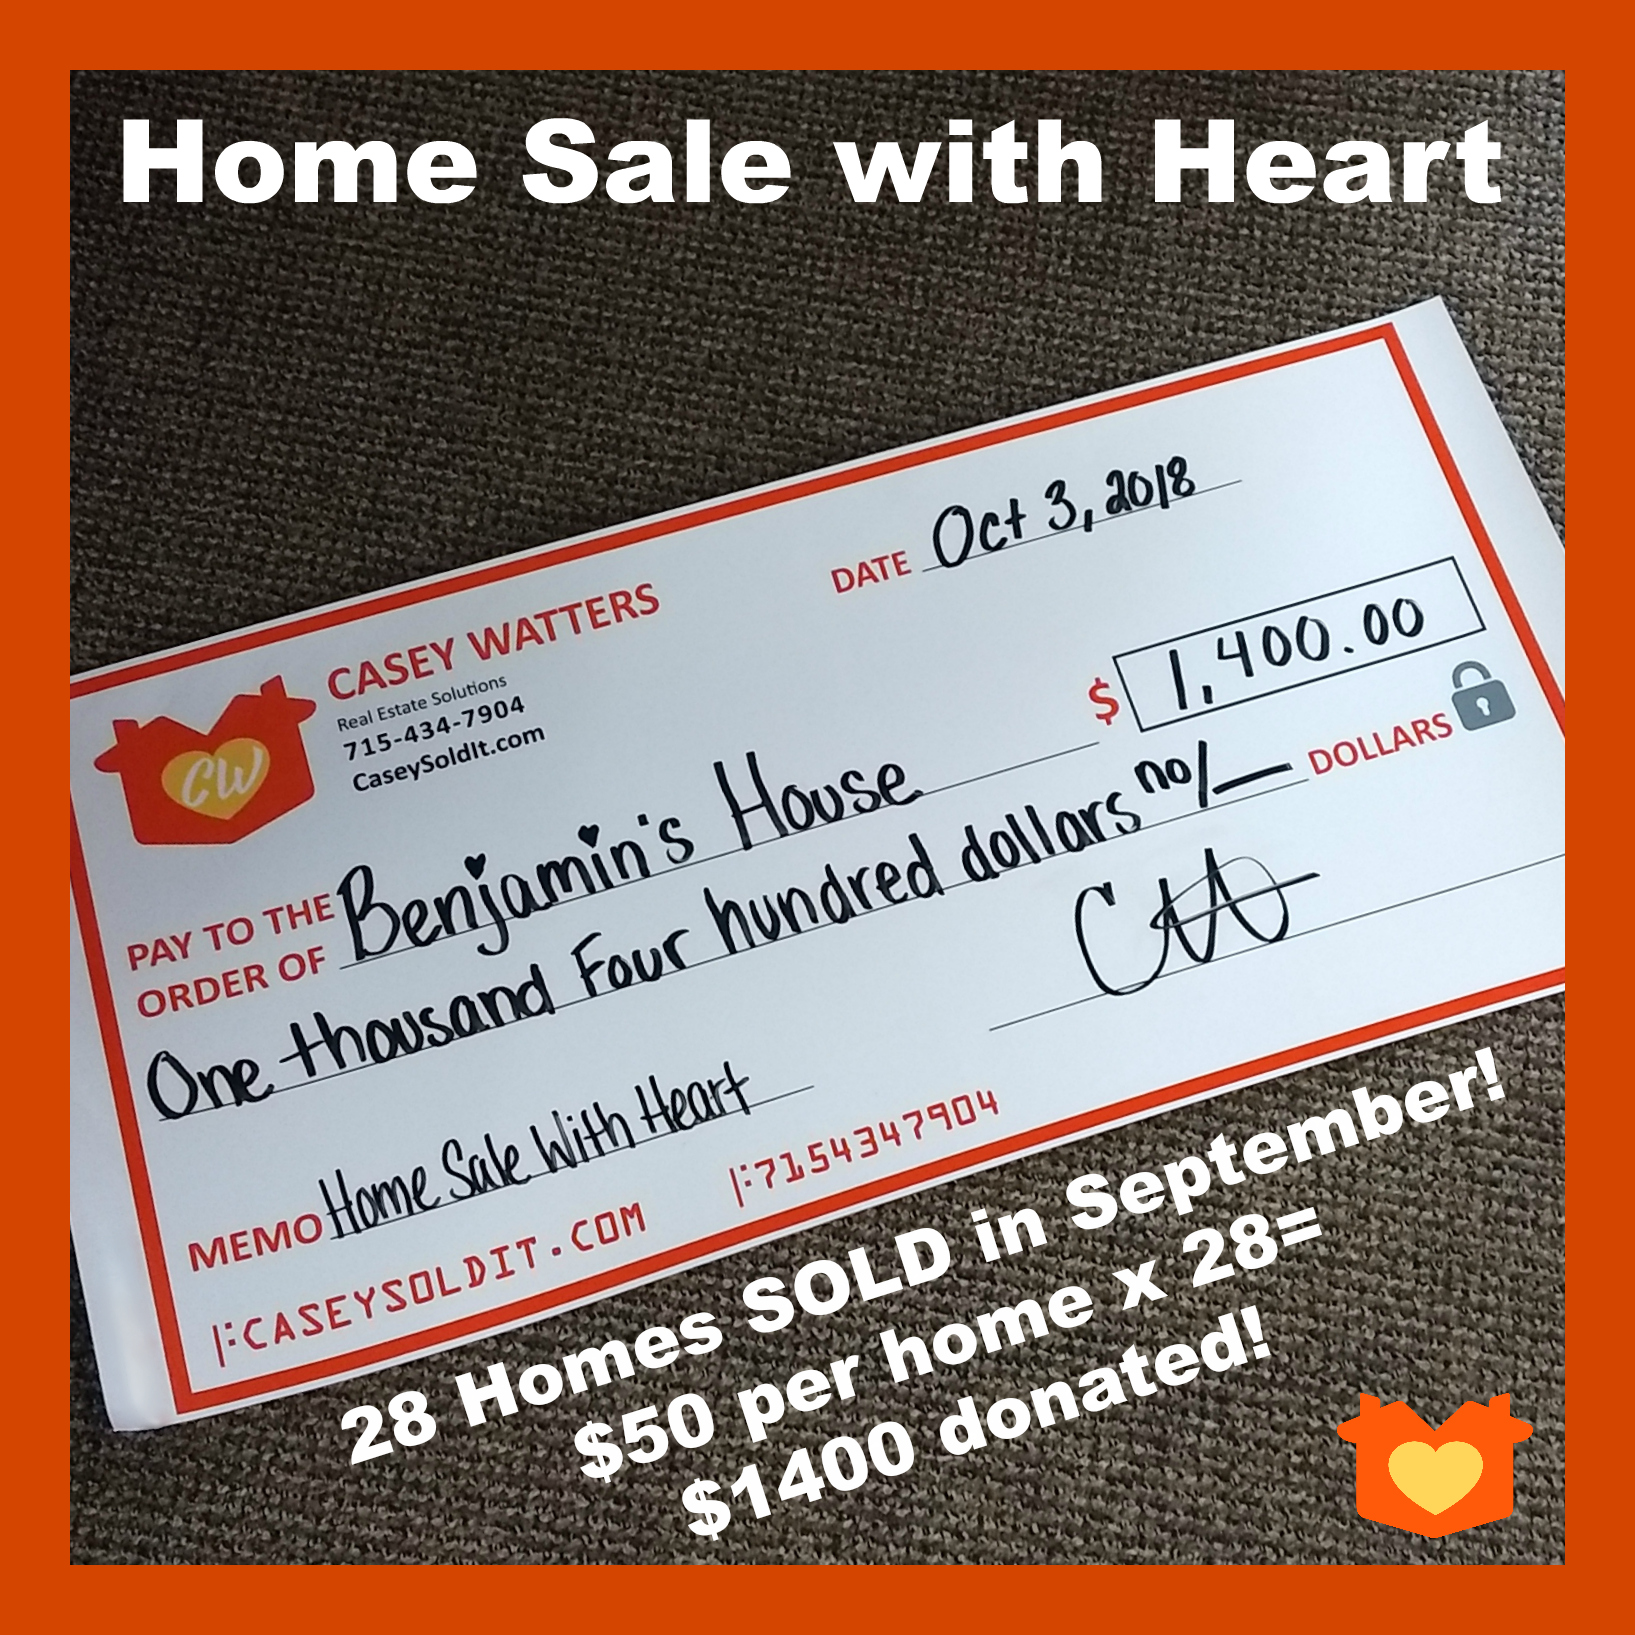 Casey Watters Home Sale with Heart Program